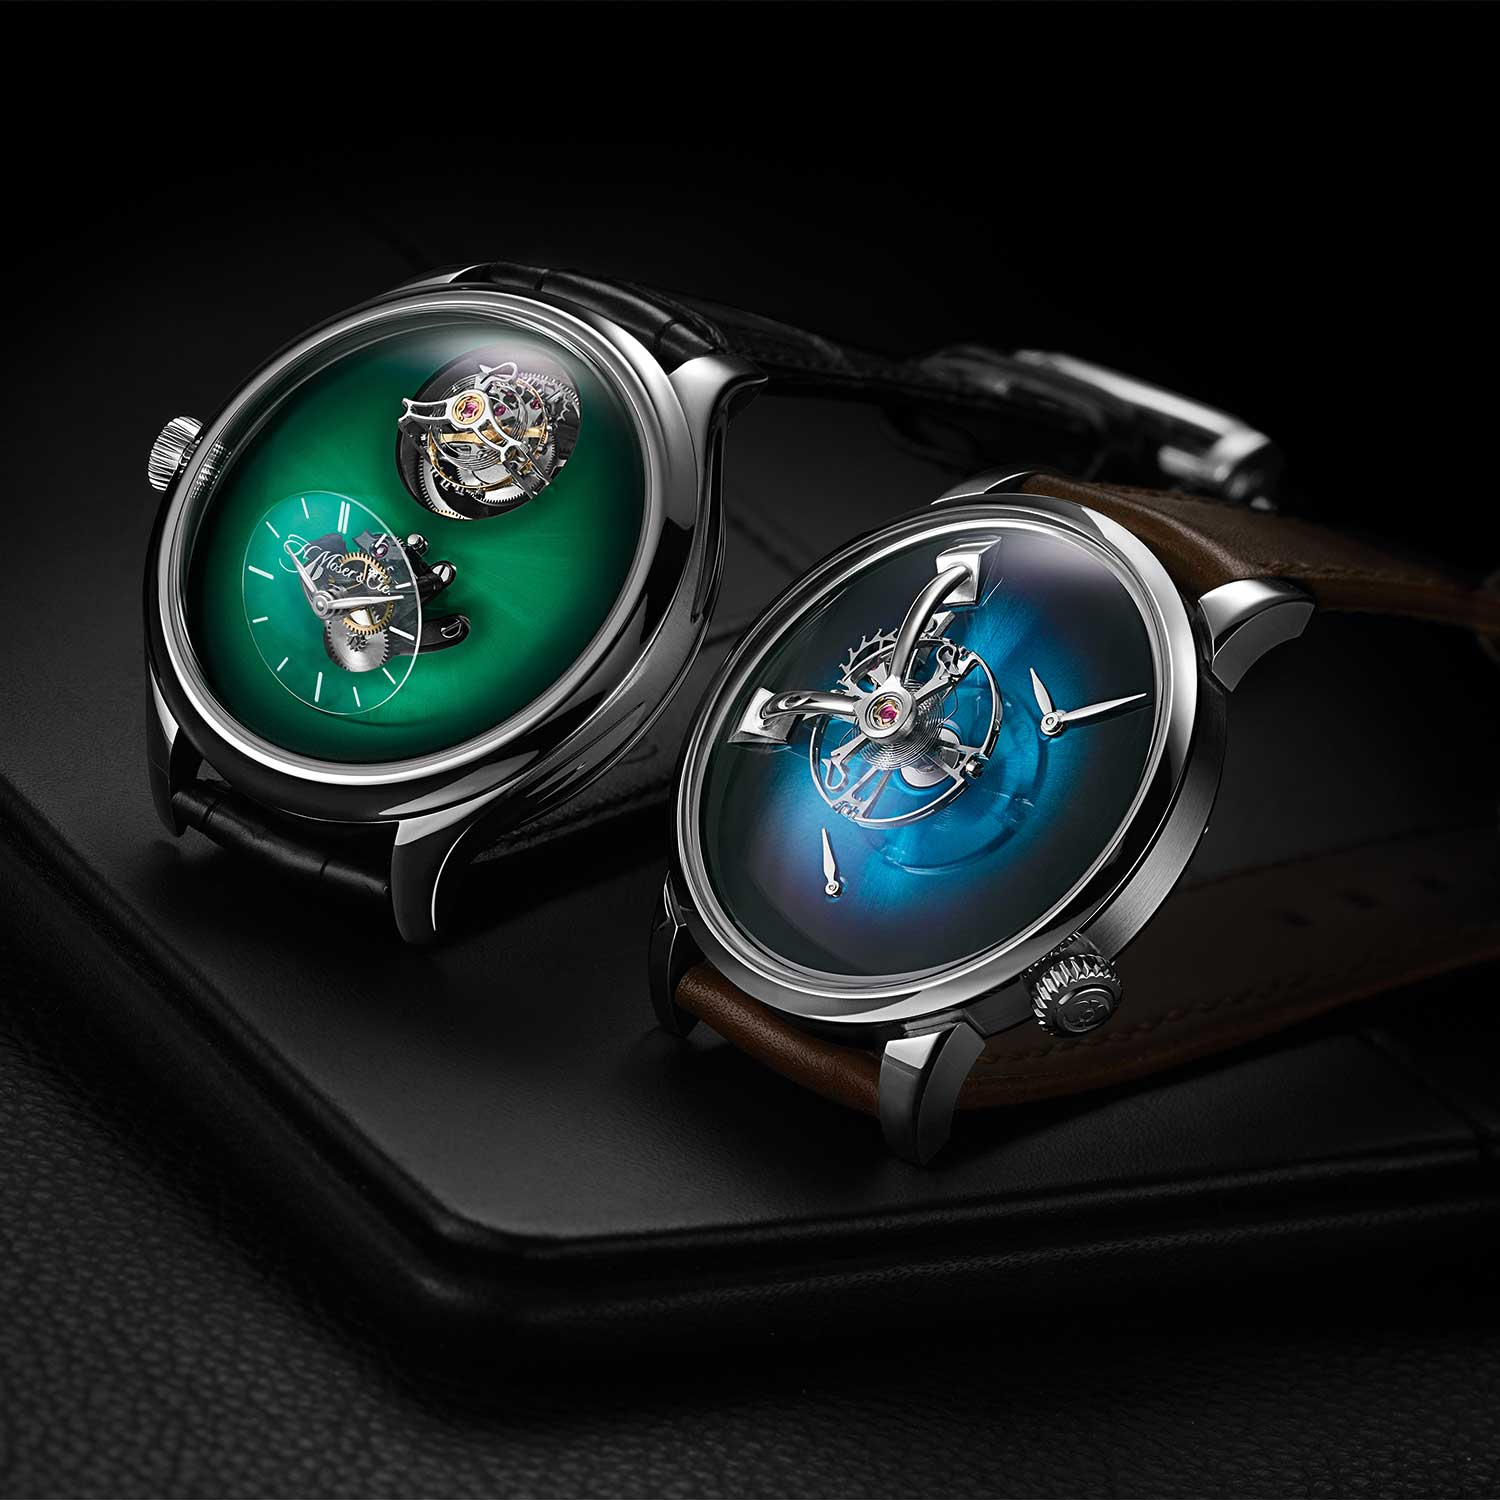 (L-R) MB&F × H. Moser Endeavour Cylindrical Tourbillon and LM101